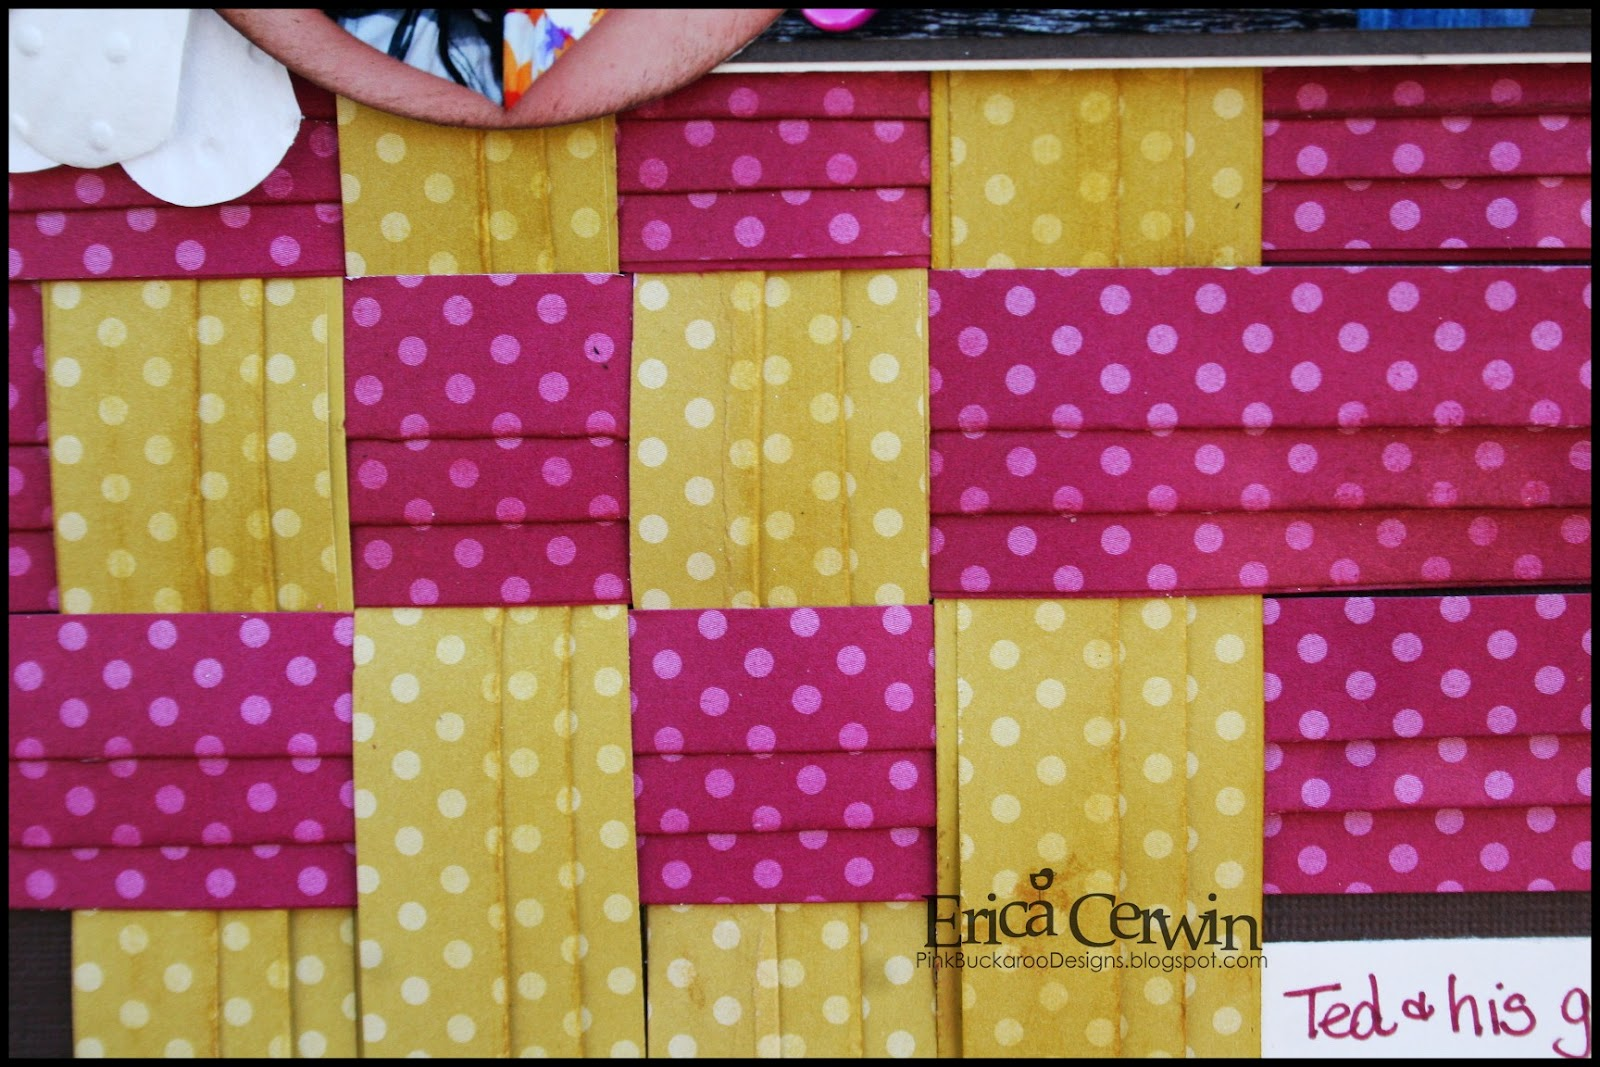 How to design scrapbook using colored paper - How To Design Scrapbook Using Colored Paper I Recently Saw In This Paper Pleating Weaving